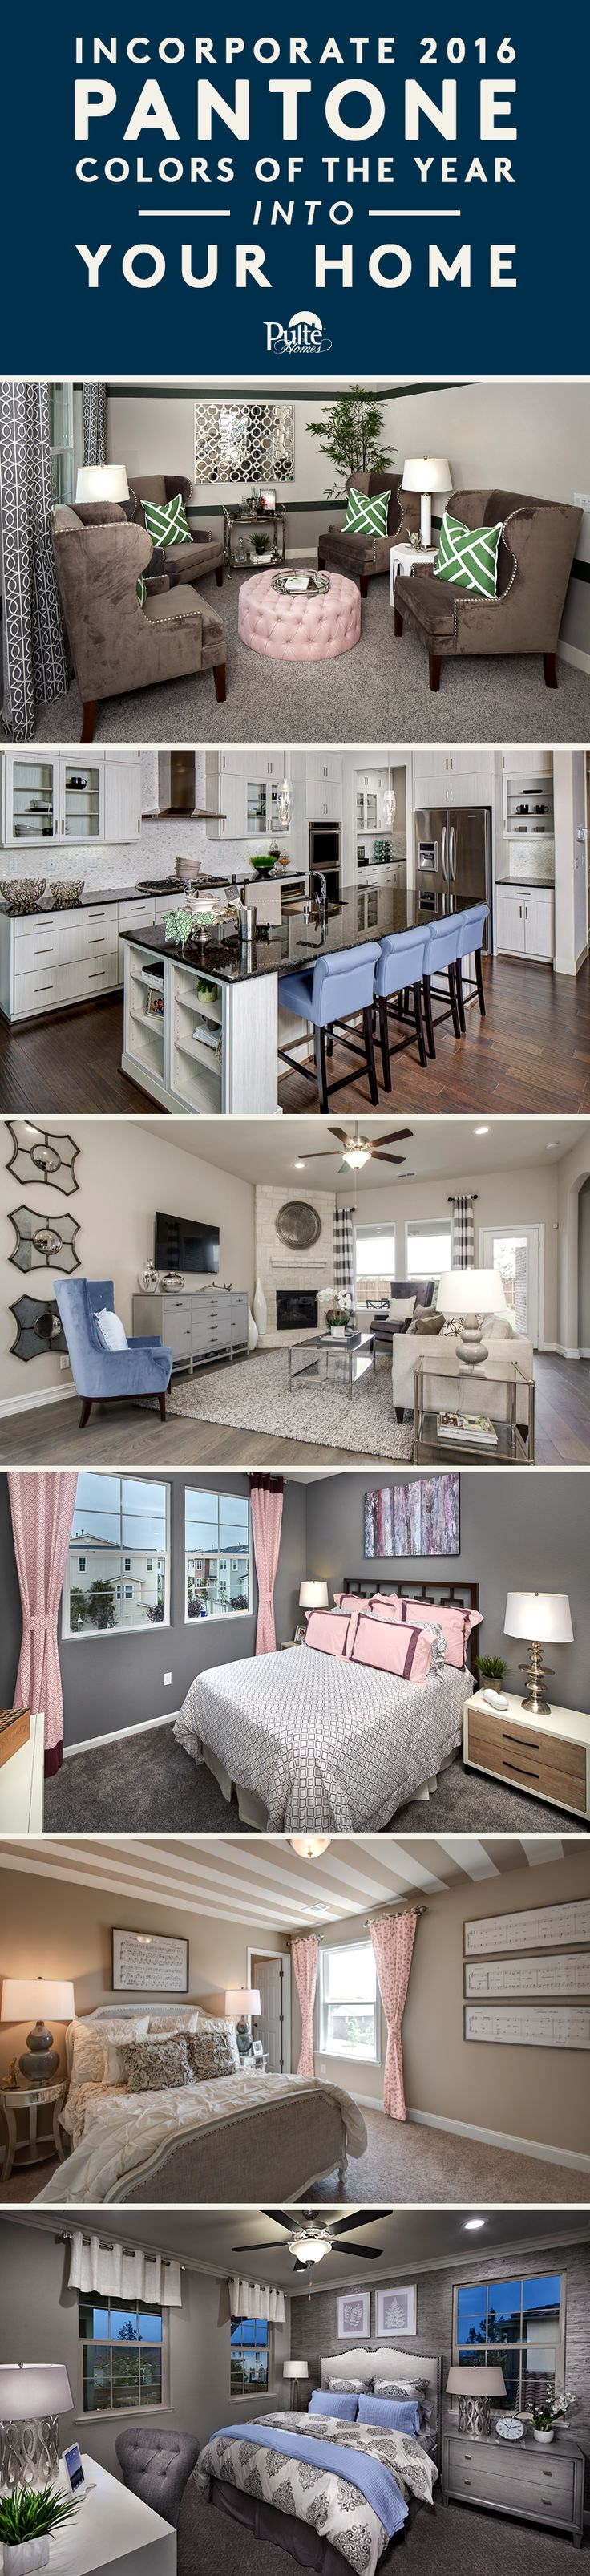 Visual Homes 57 Best Colorful Decor Images On Pinterest  Colorful Decor Pulte